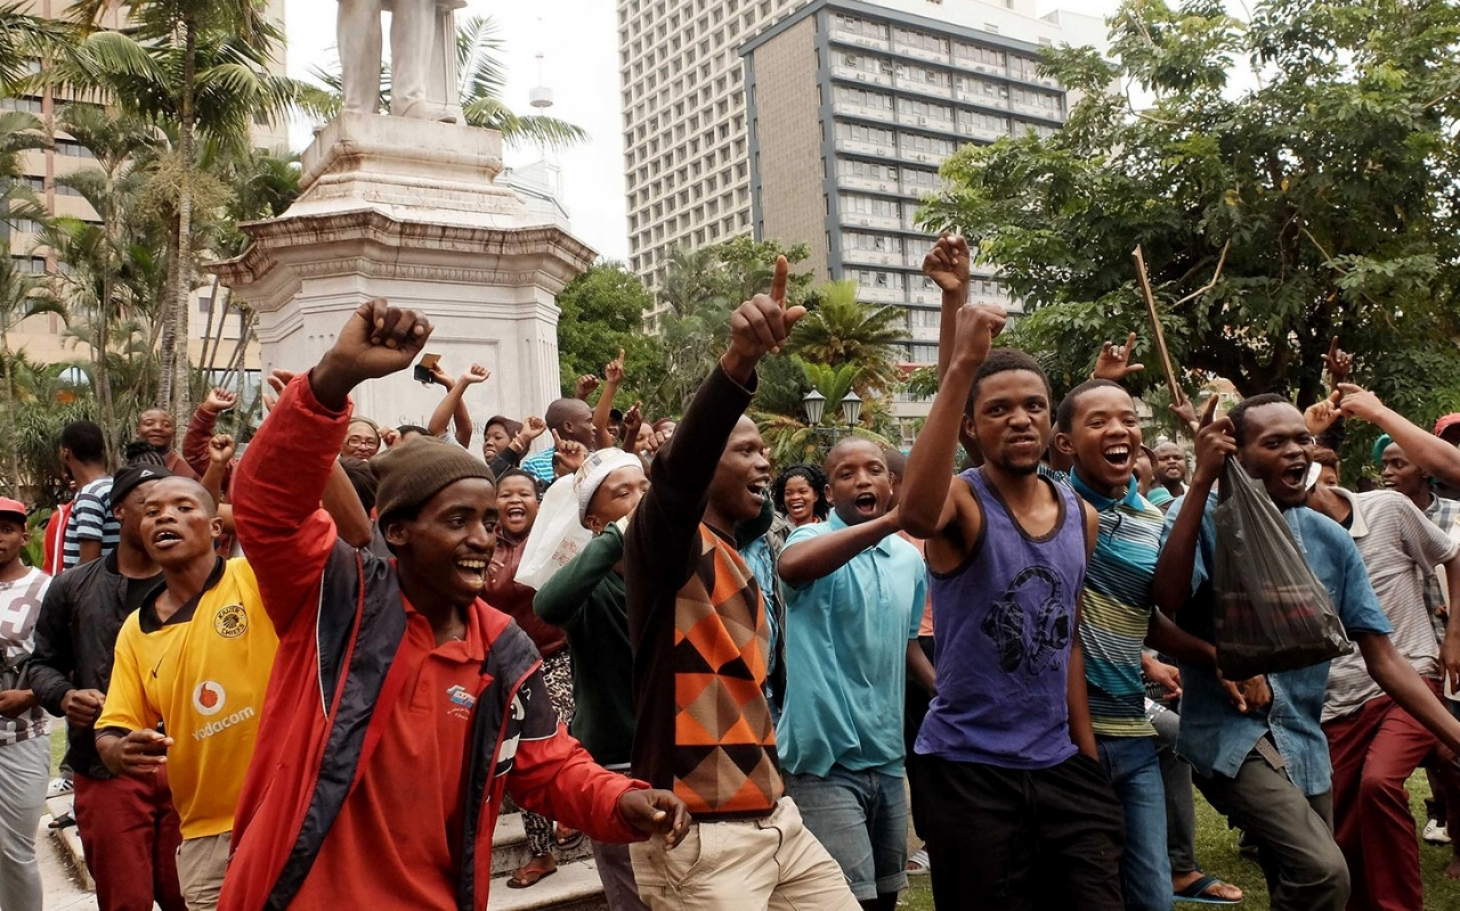 South Africans March Against Attacks On Foreigners